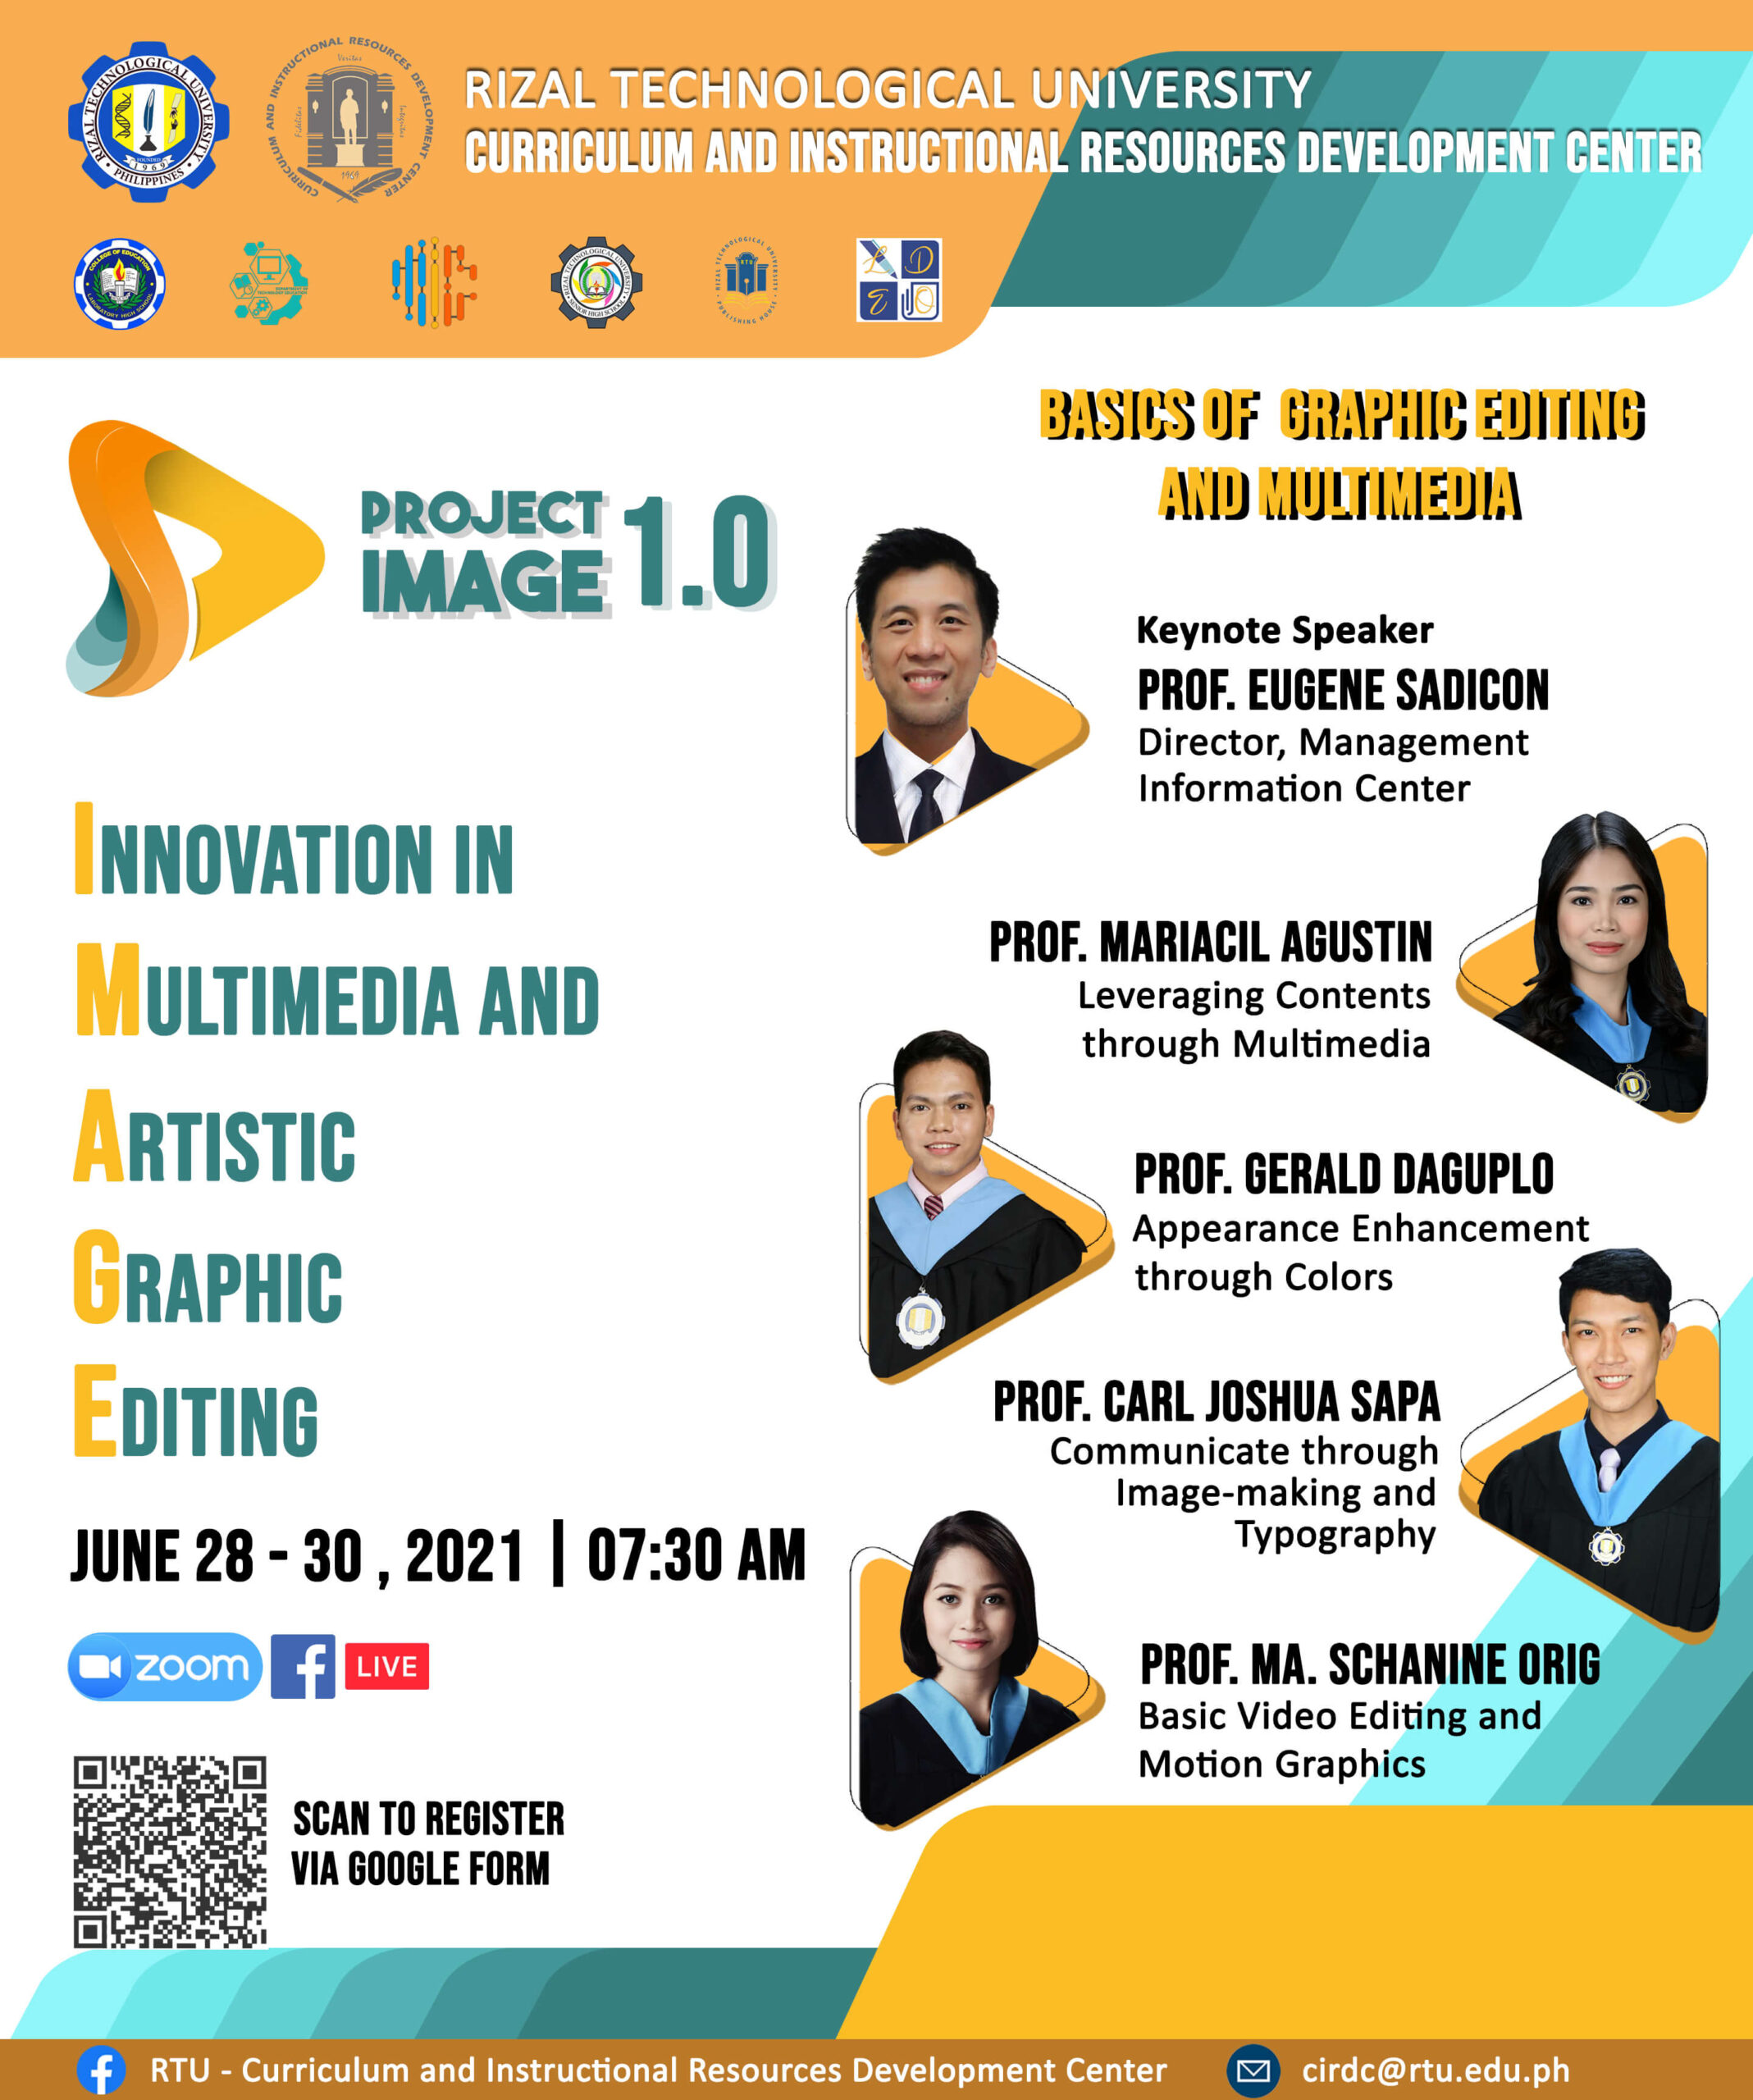 Project IMAGE 1.0: Innovation in Multimedia and Artistic Graphic Editing